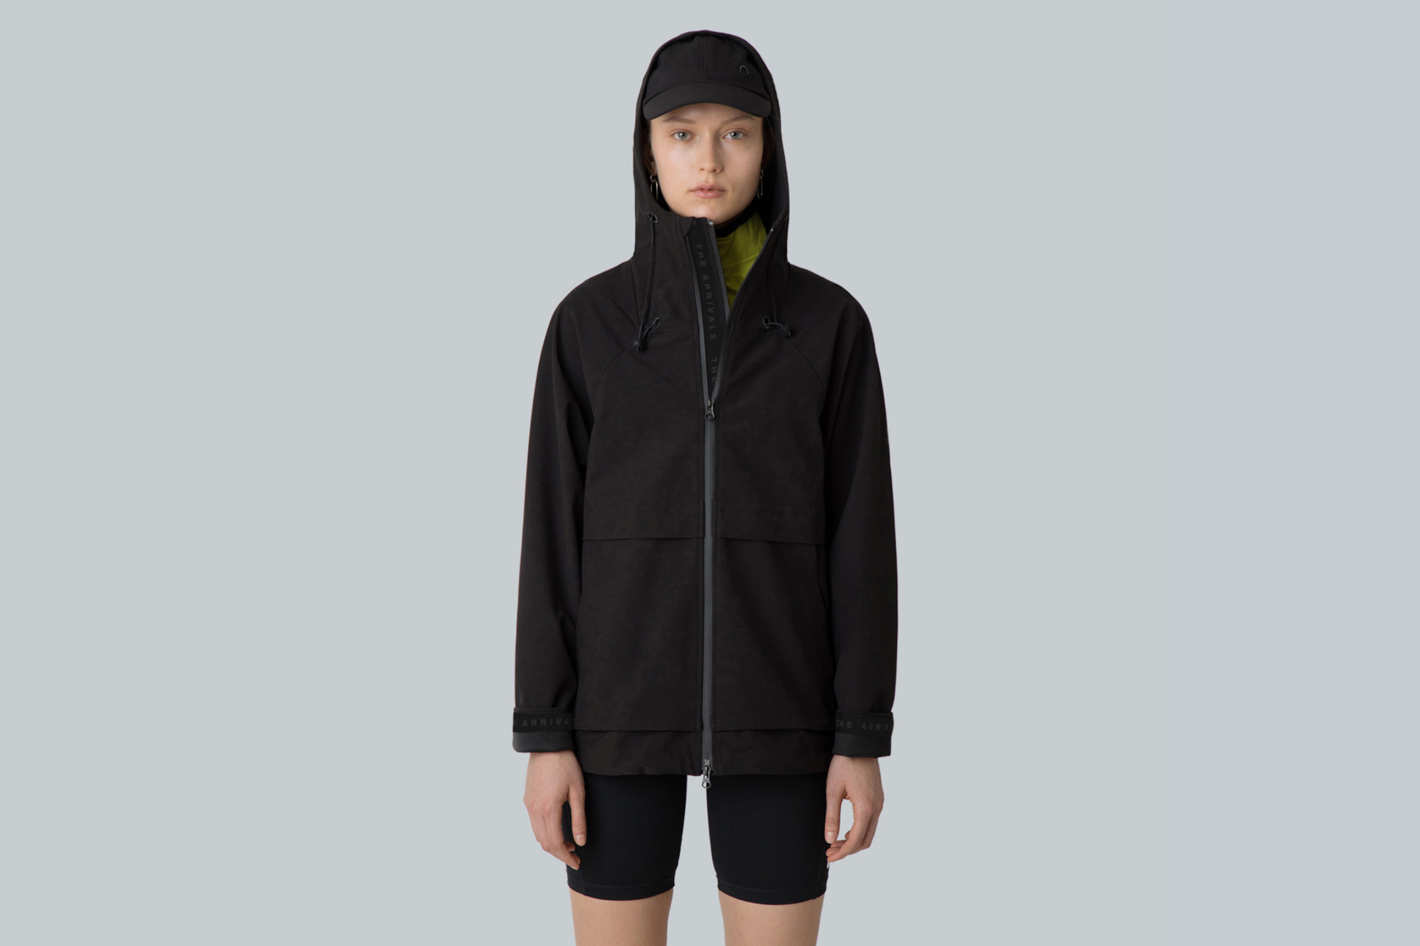 The Arrivals Larsen Sport Unisex Rain Jacket